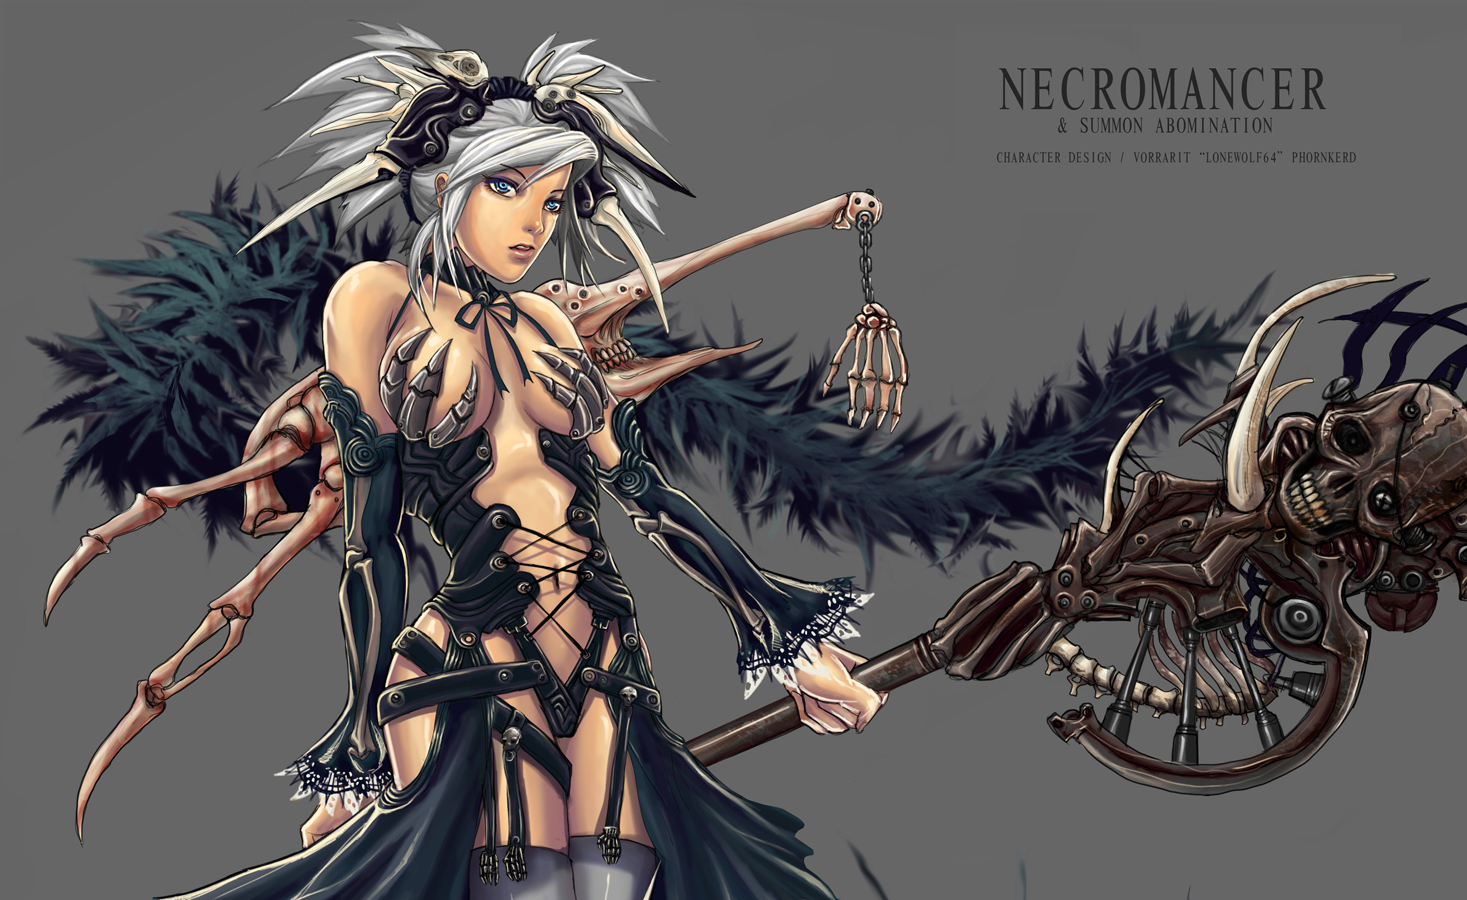 Necromancer_Detail_by_LoneWolf64.jpg